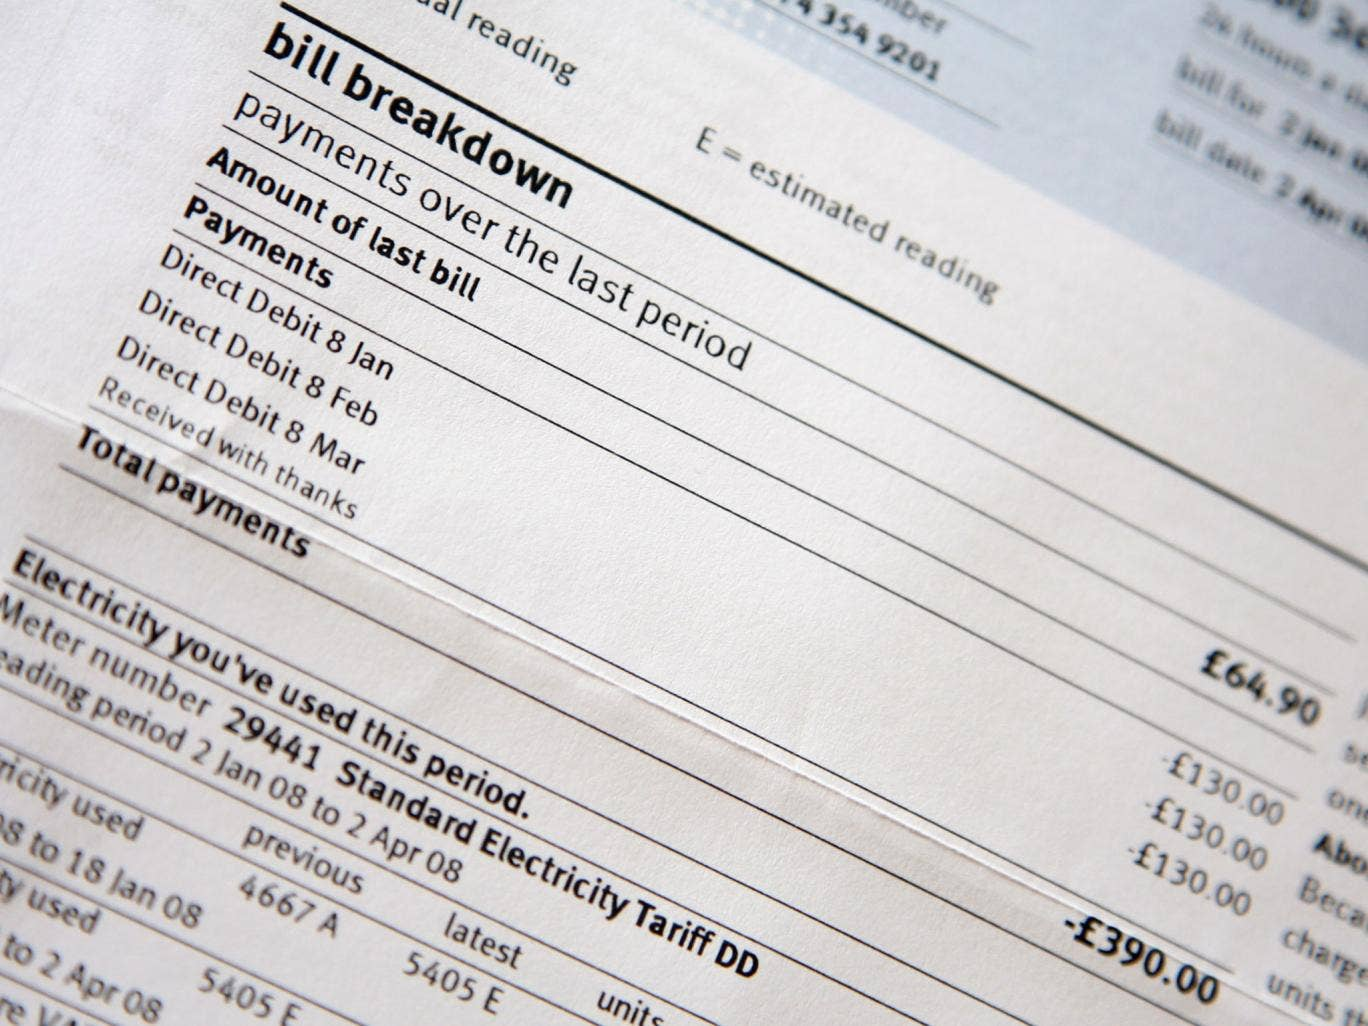 Energy bills are being artificially inflated by a lack of competition